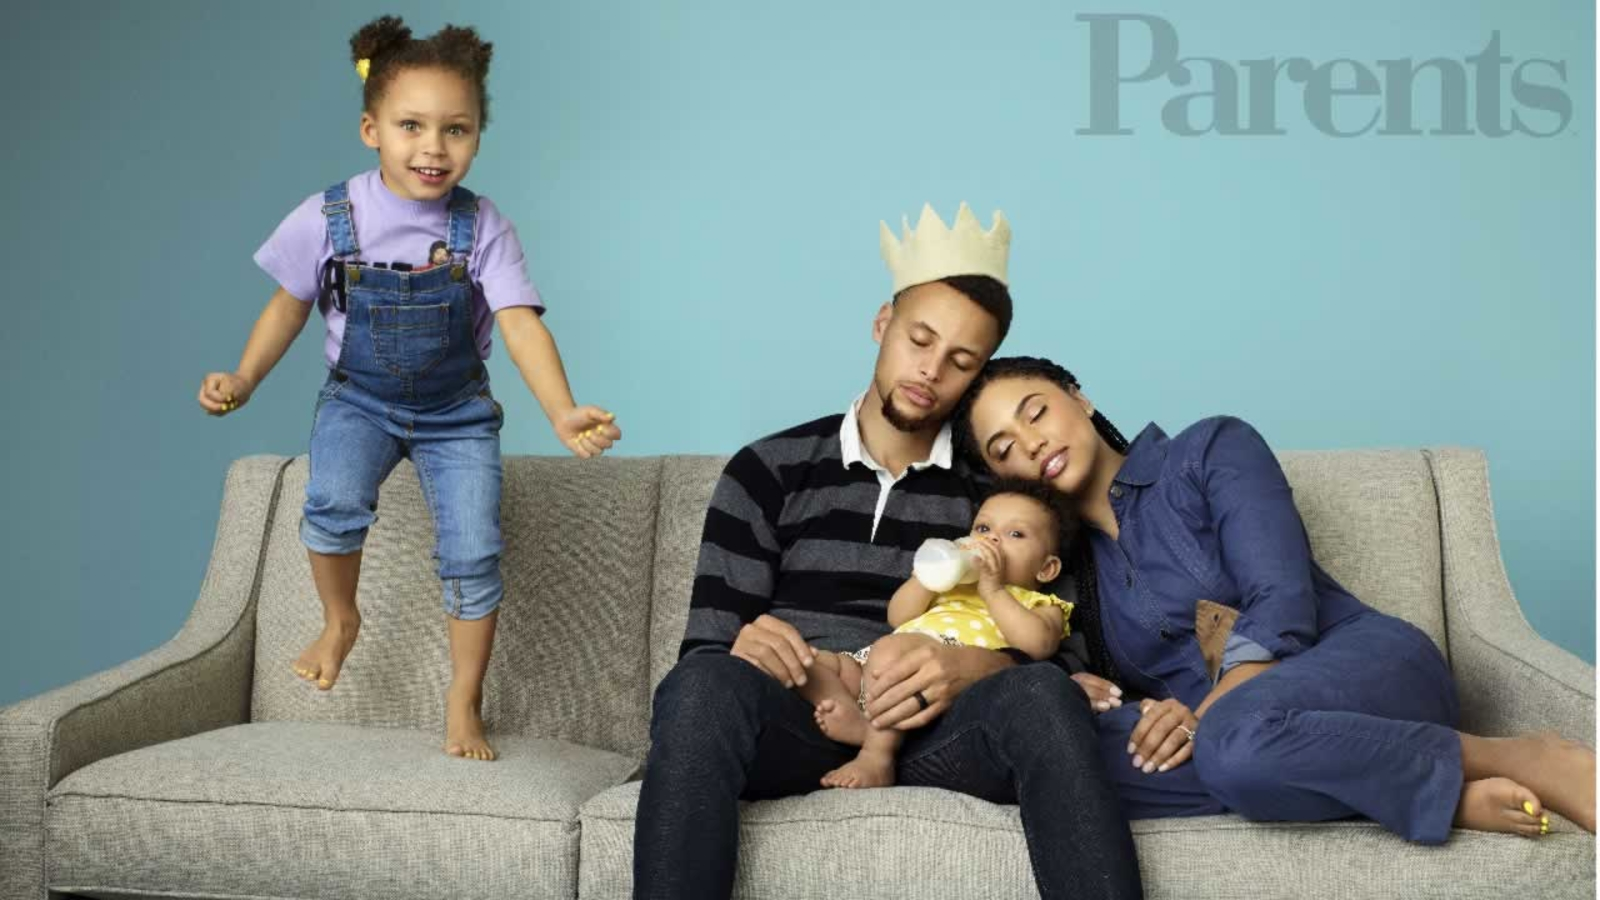 steph curry and adorable family featured on cover of